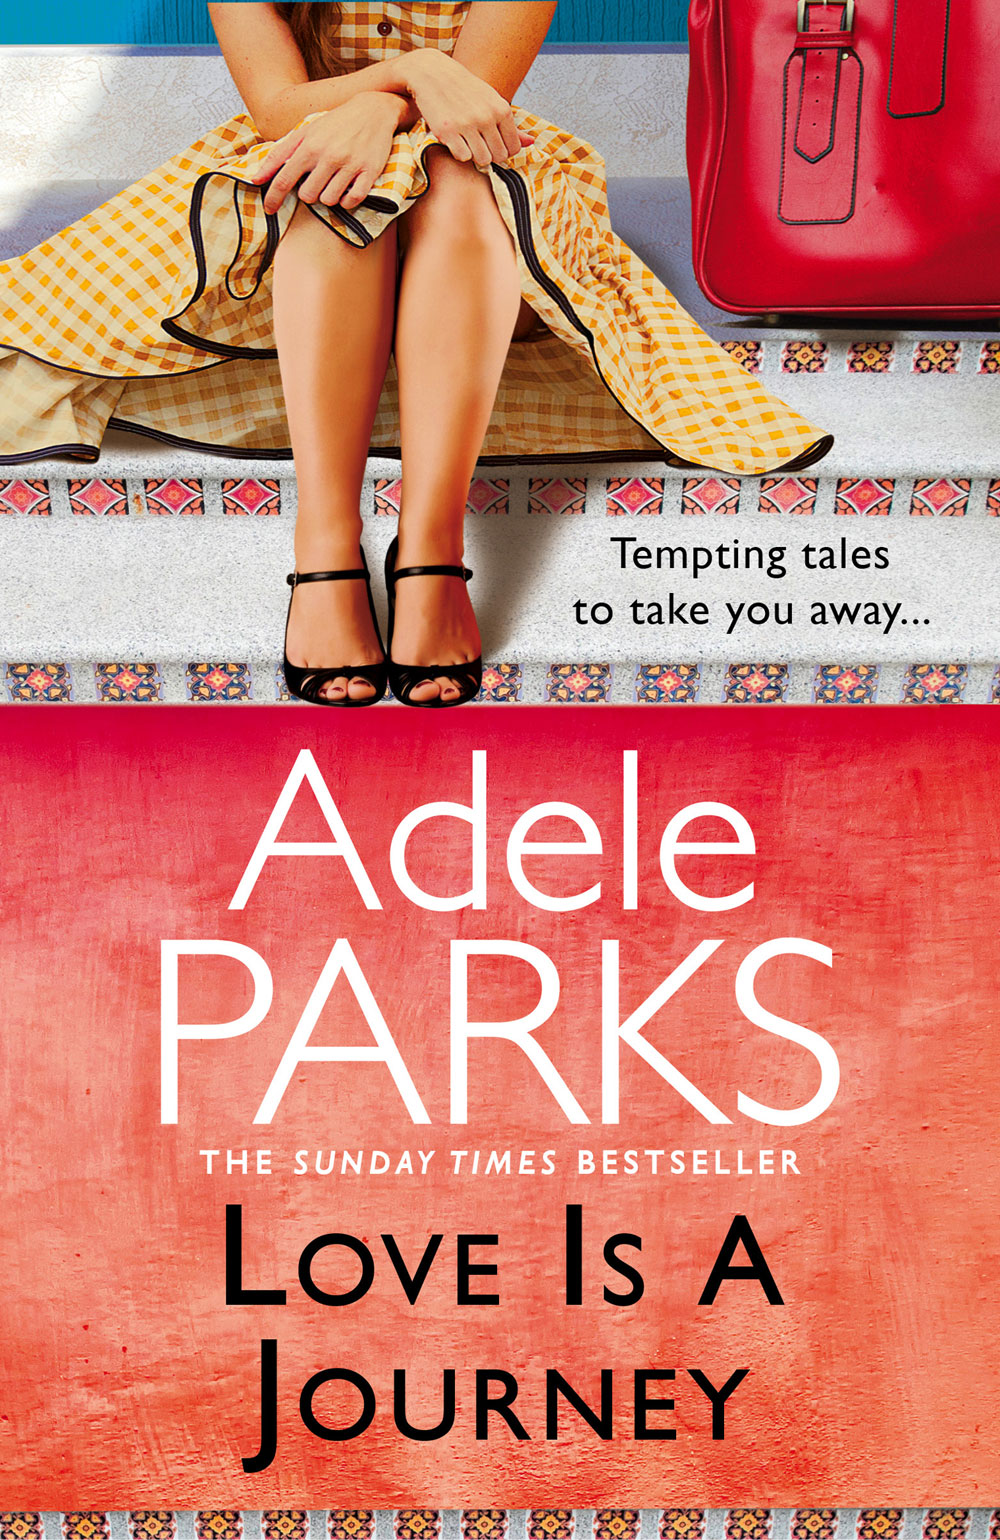 Love is a Journey by Adele Parks